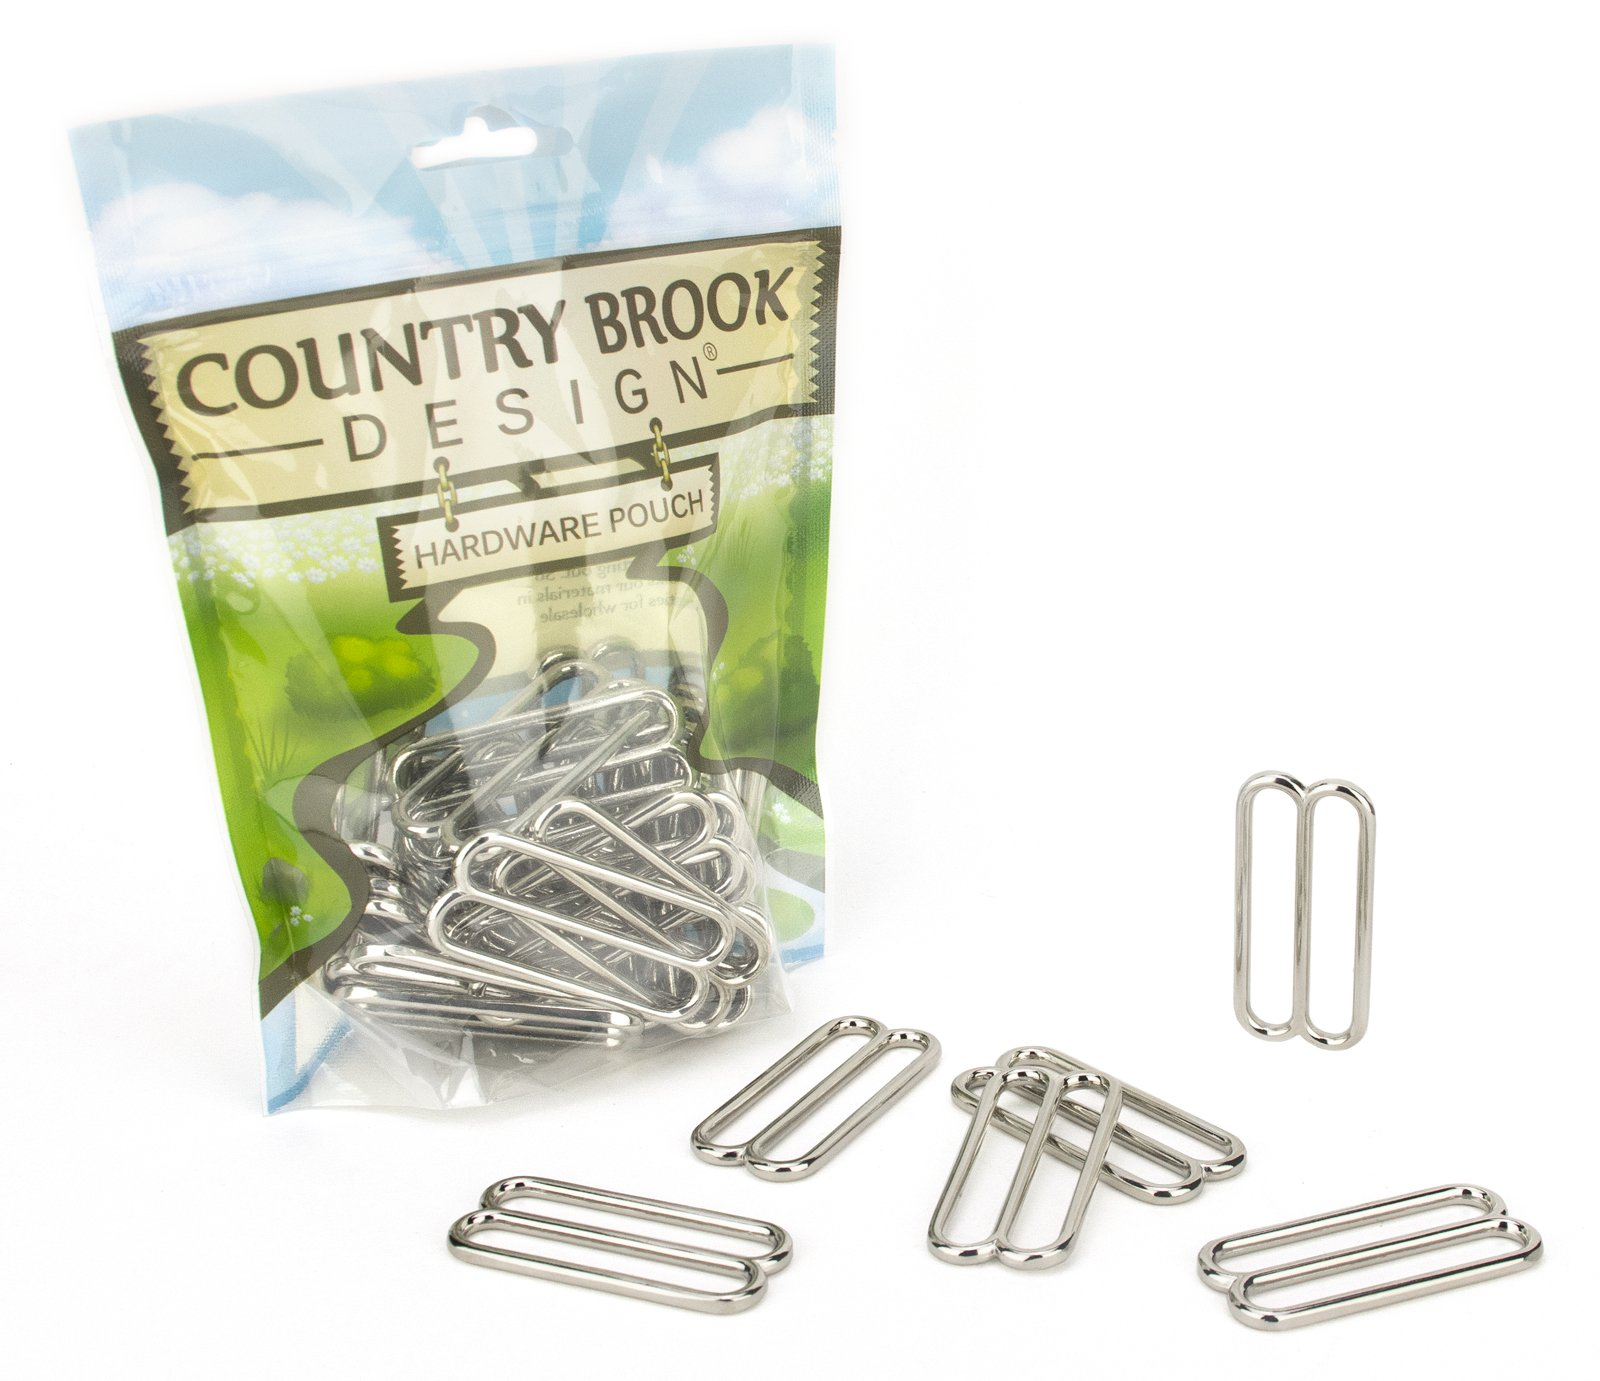 50 - Country Brook Design - 2 Inch Metal Round Triglide Slides by Country Brook Design